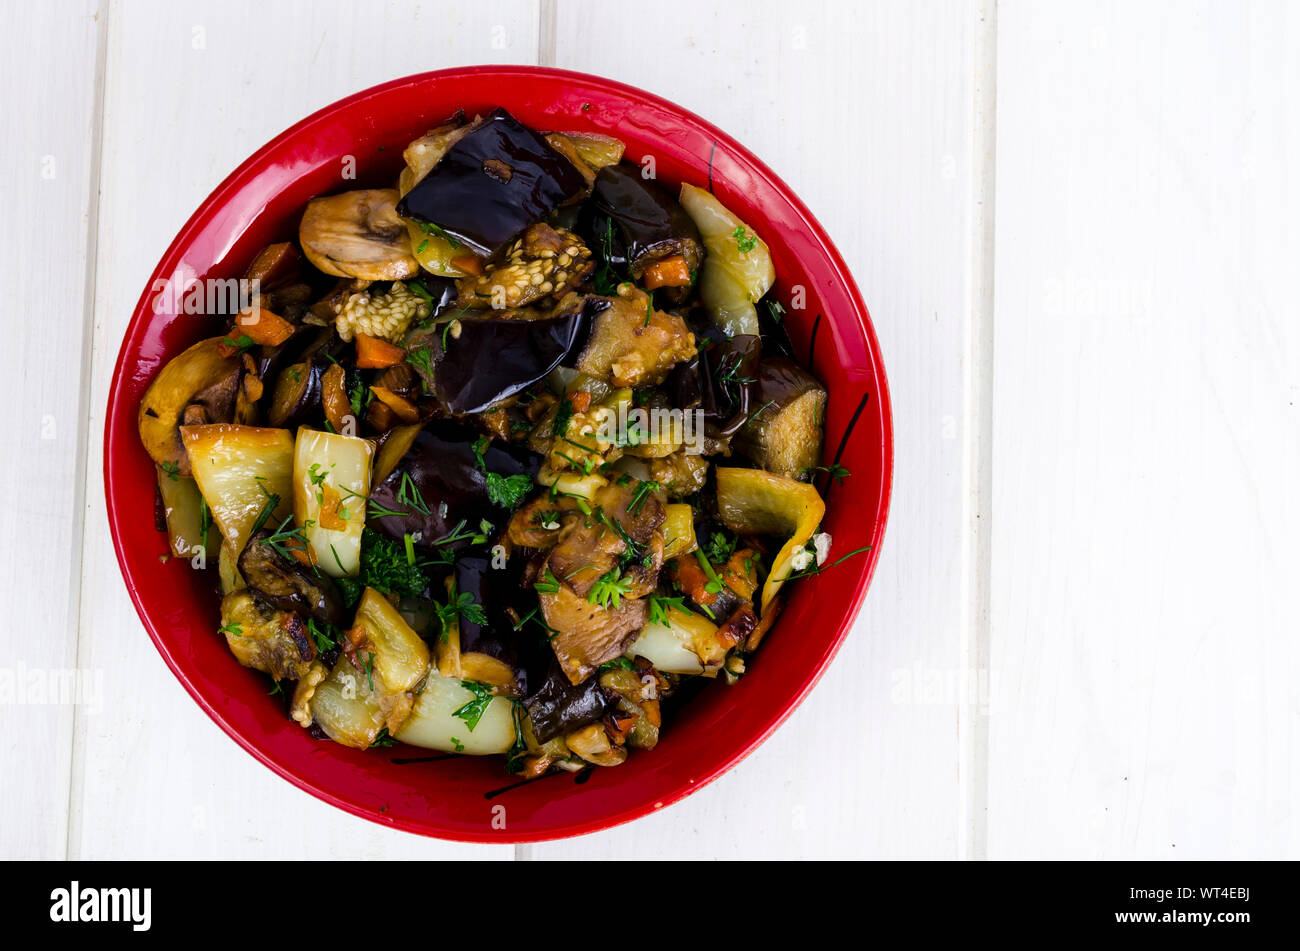 Vegetable saute with eggplants in ceramic bowl on white wooden table. Studio Photo Stock Photo